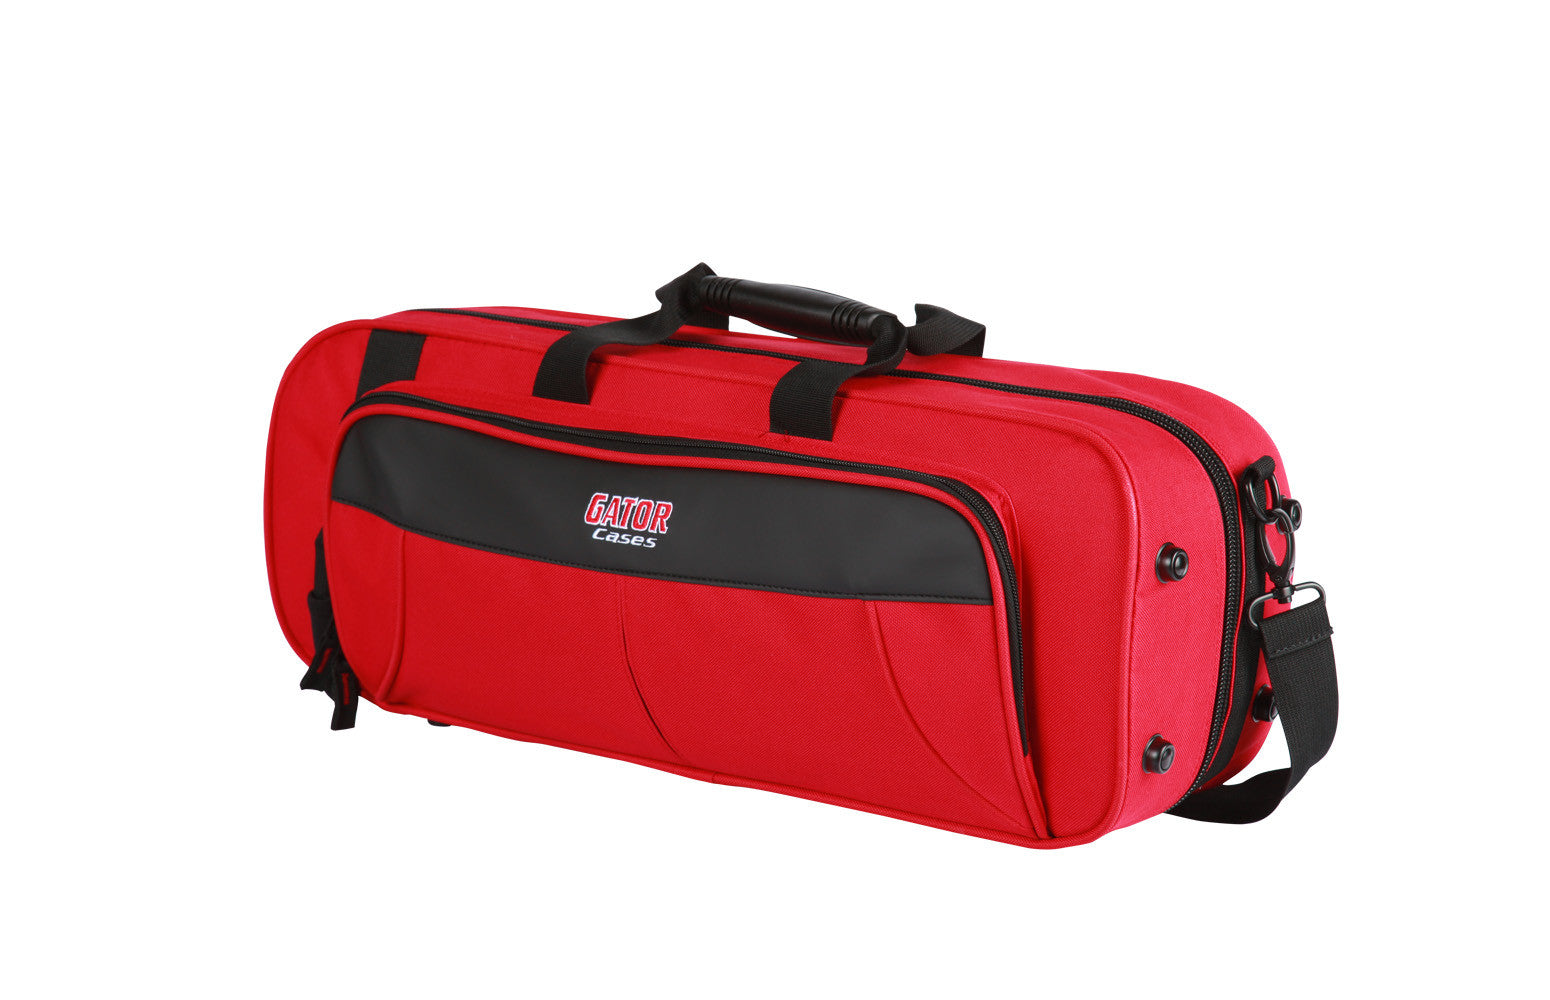 Gator Lightweight Trumpet Case - FREE SHIPPING - Multiple Colors